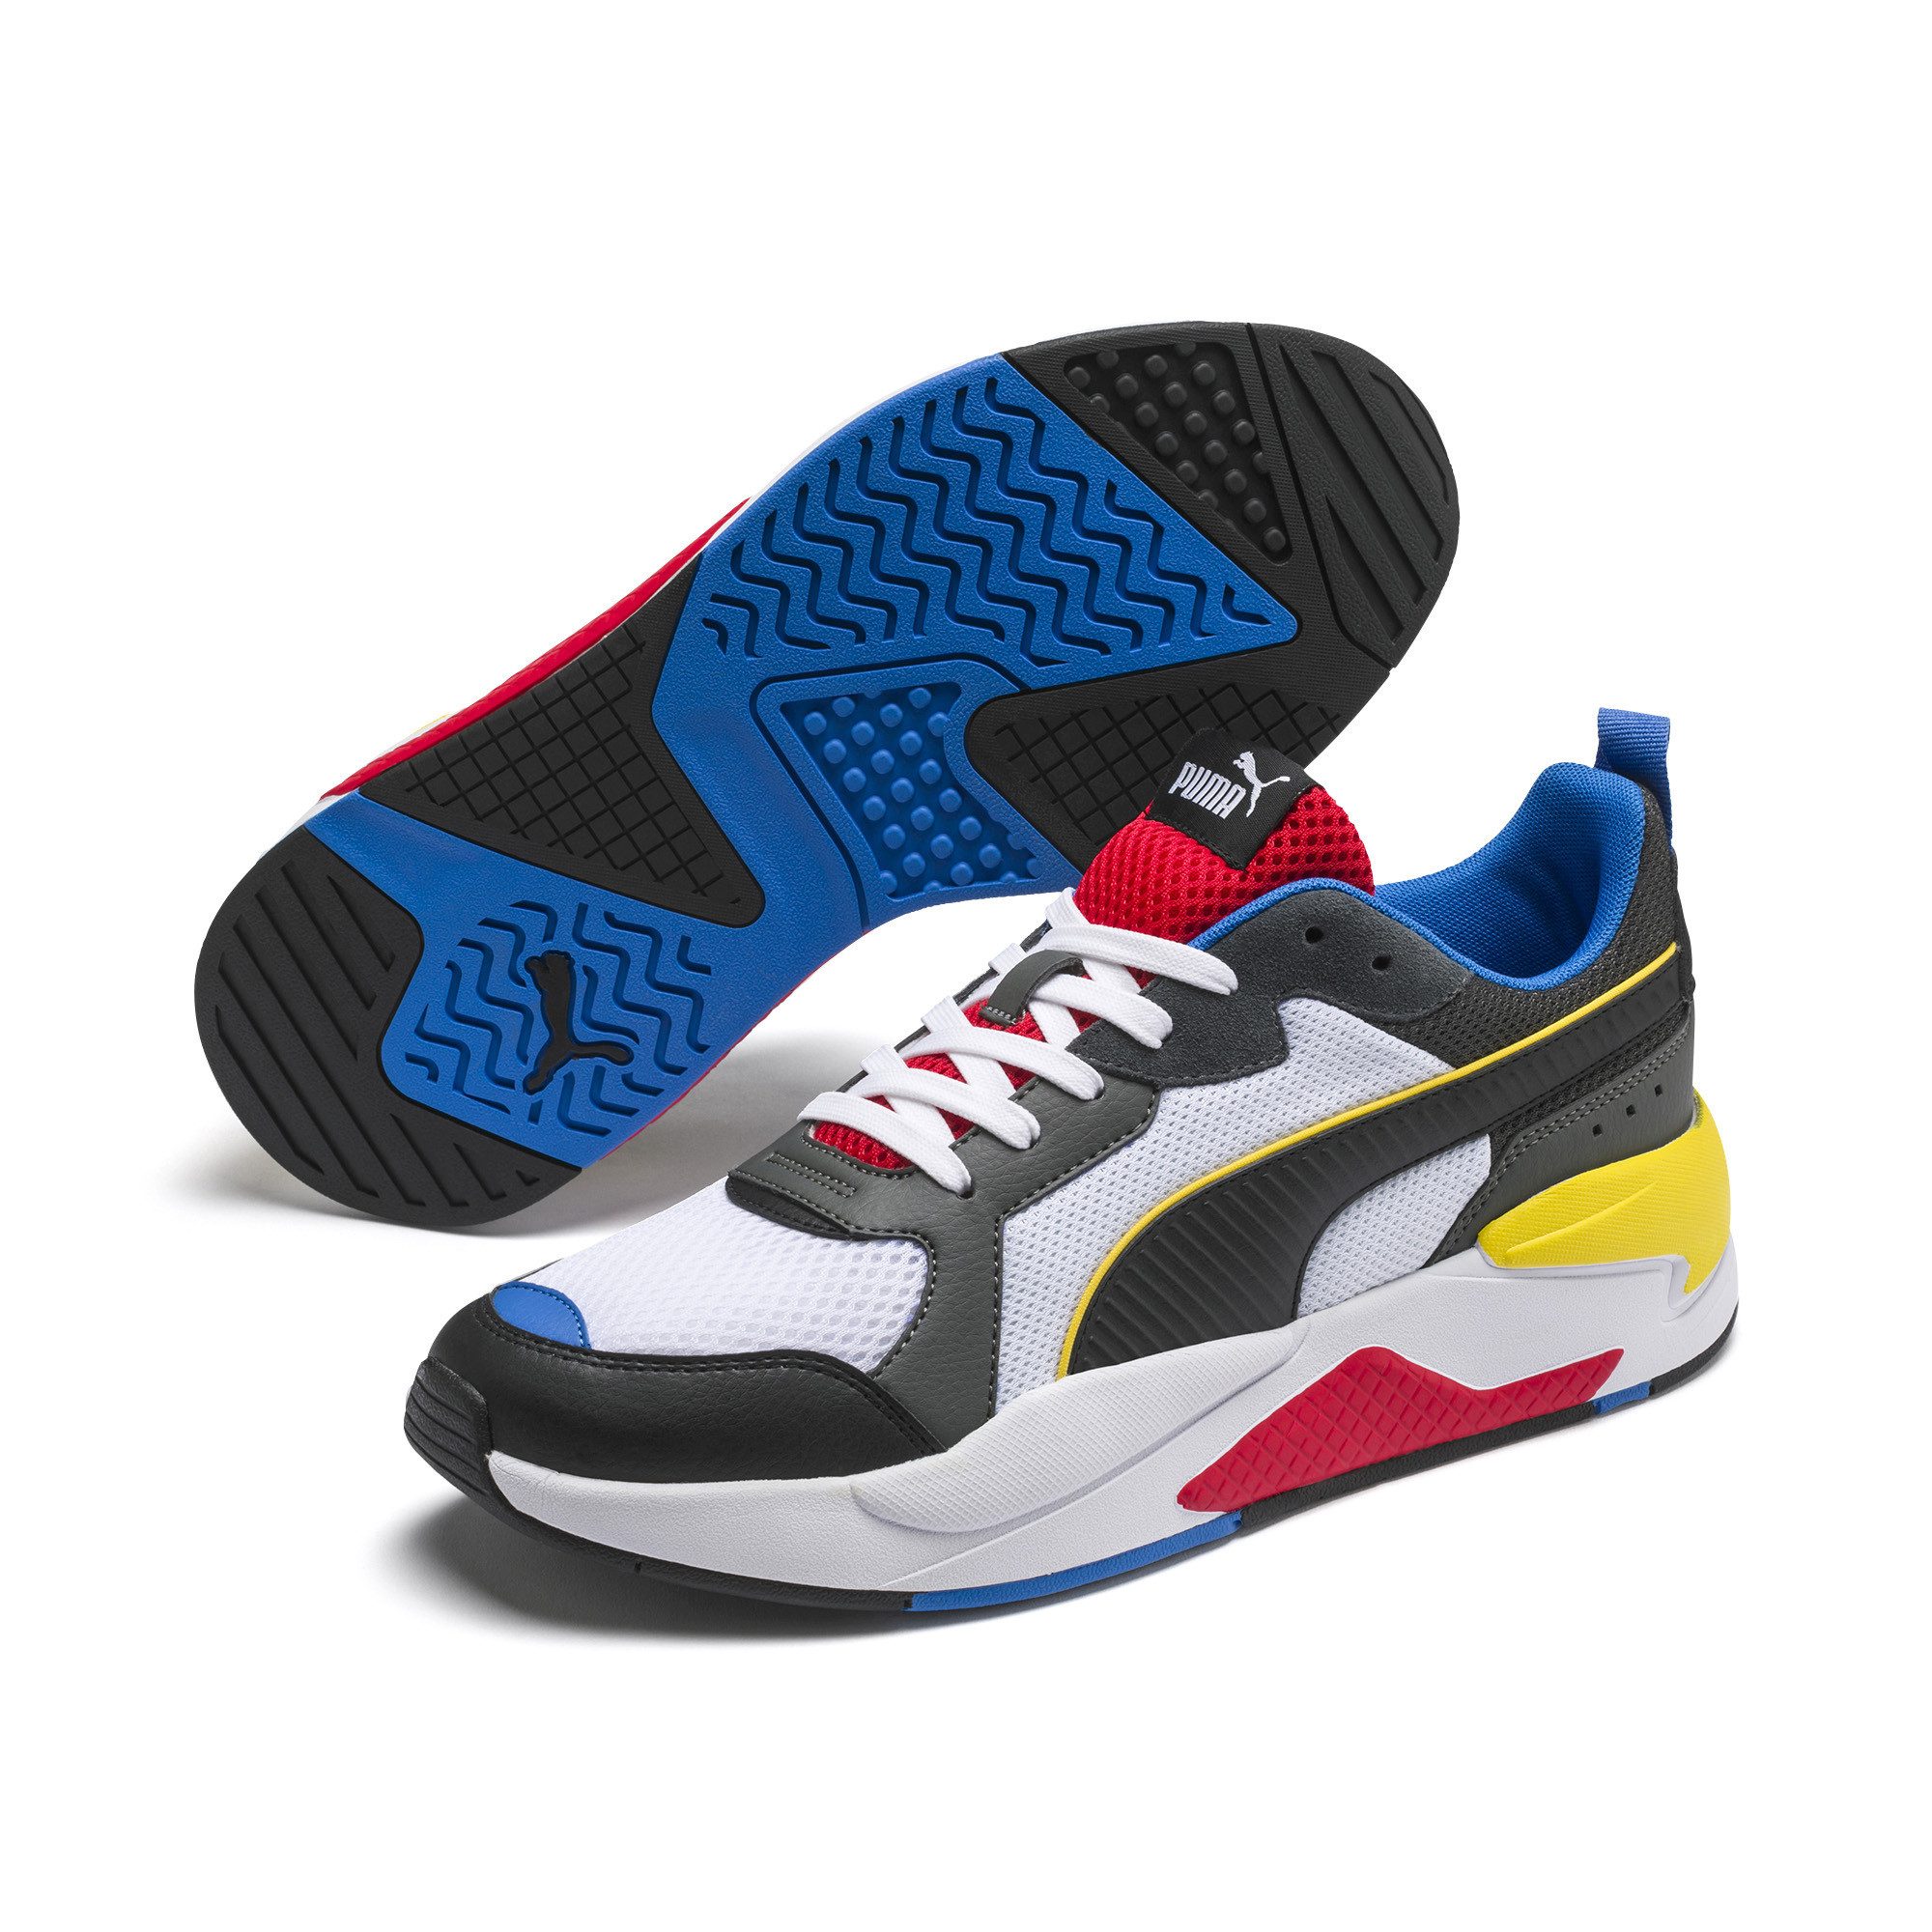 Details about PUMA Men's X-RAY Sneakers